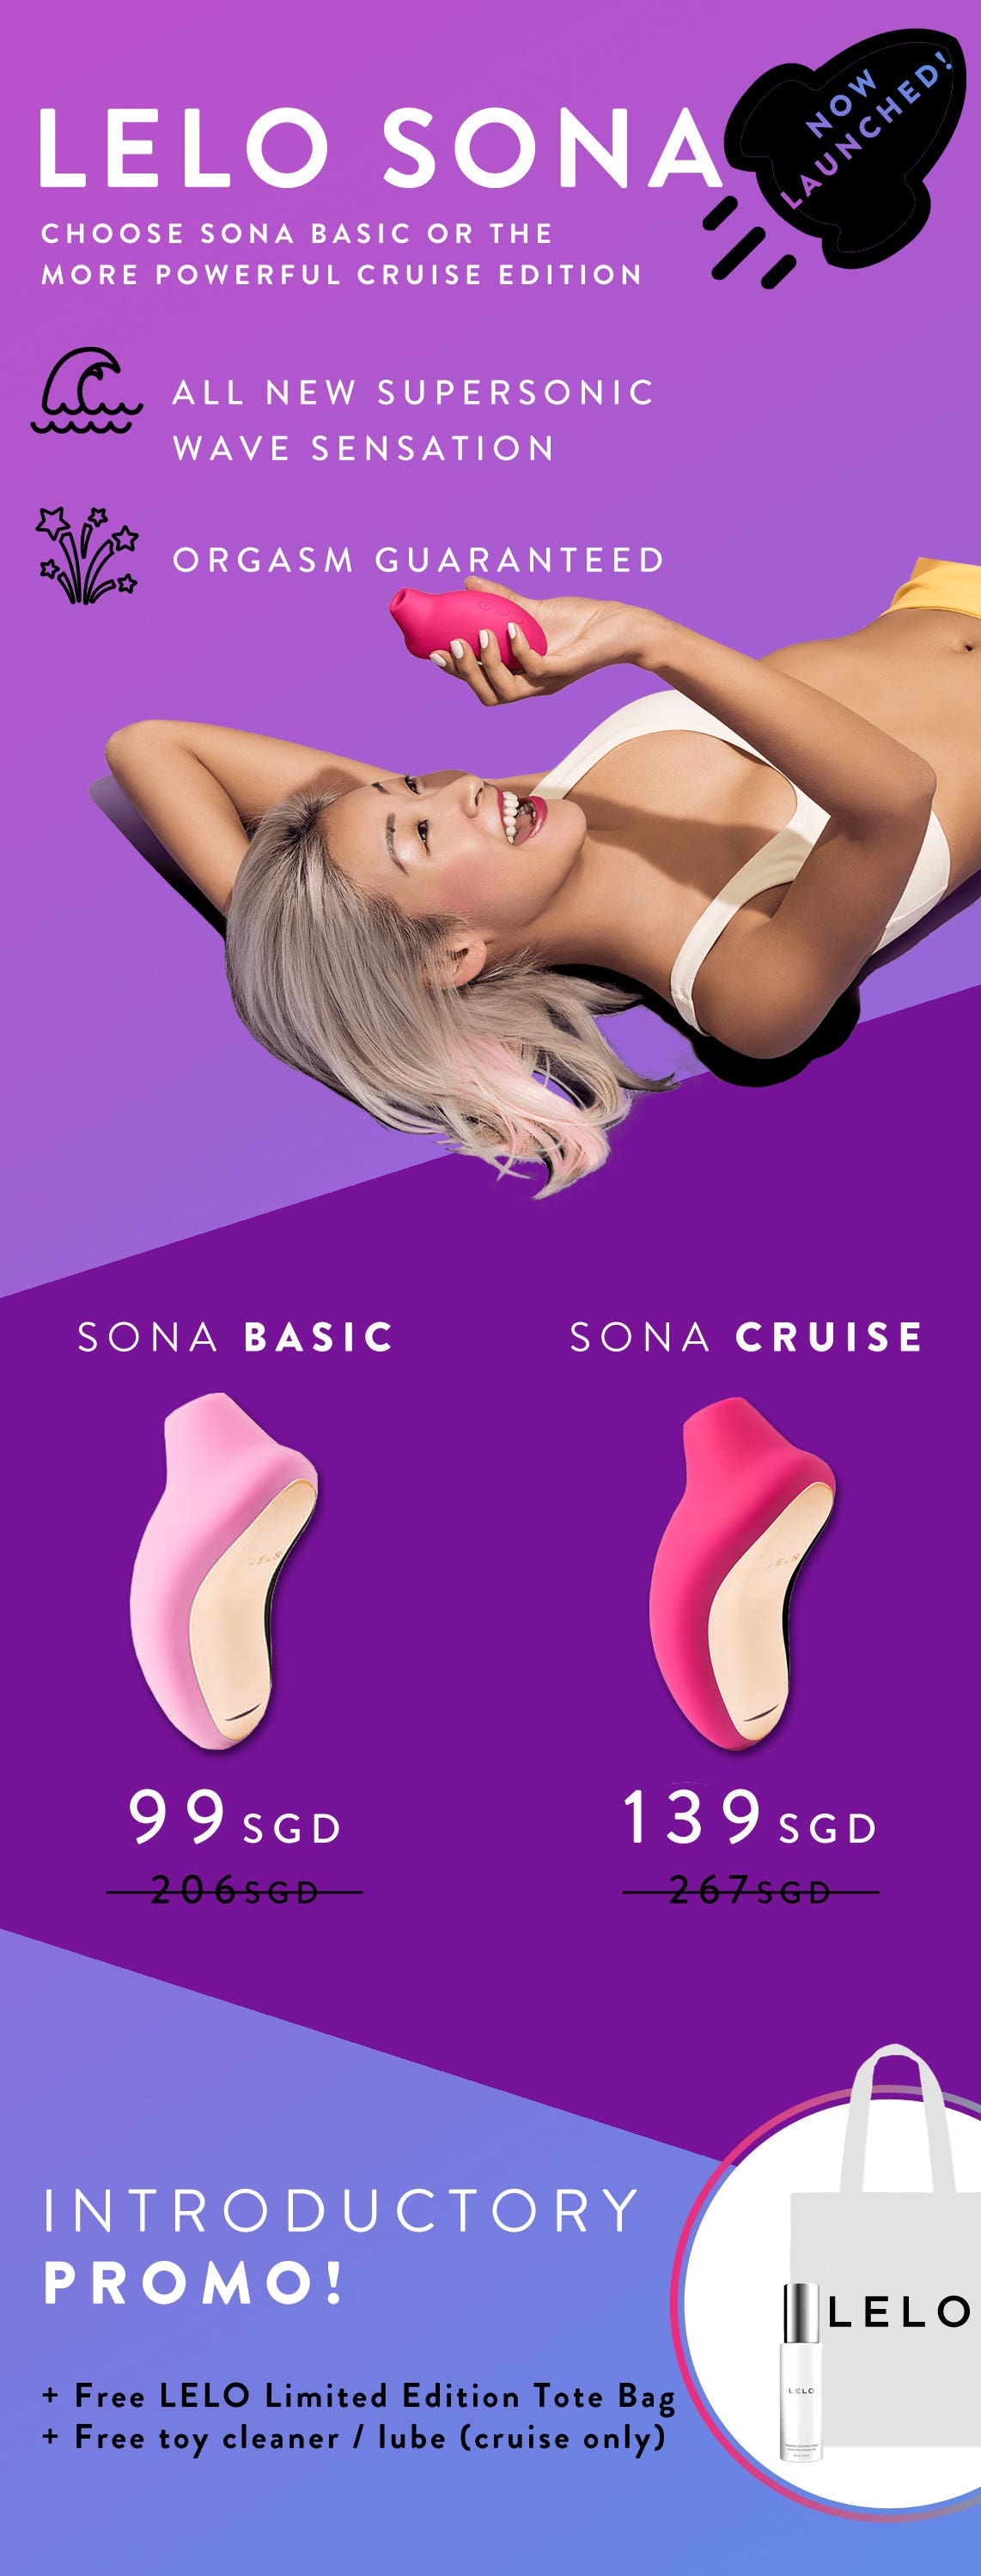 LELO SONA Promotion Package